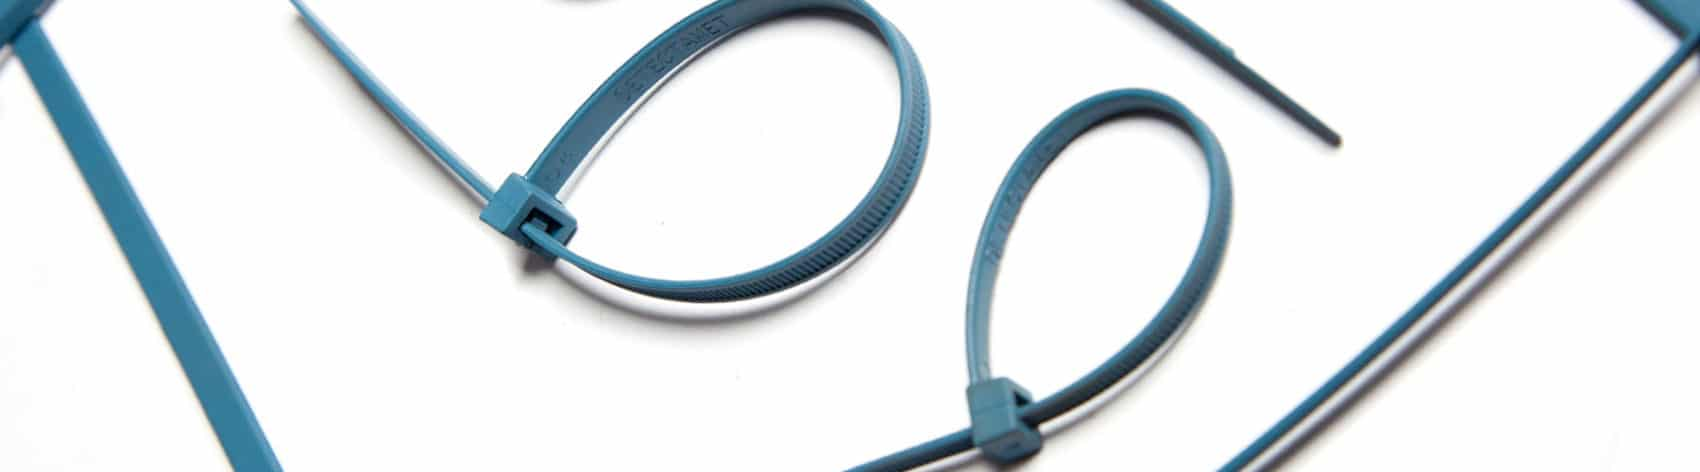 Homepage-Slider-Cable-Ties